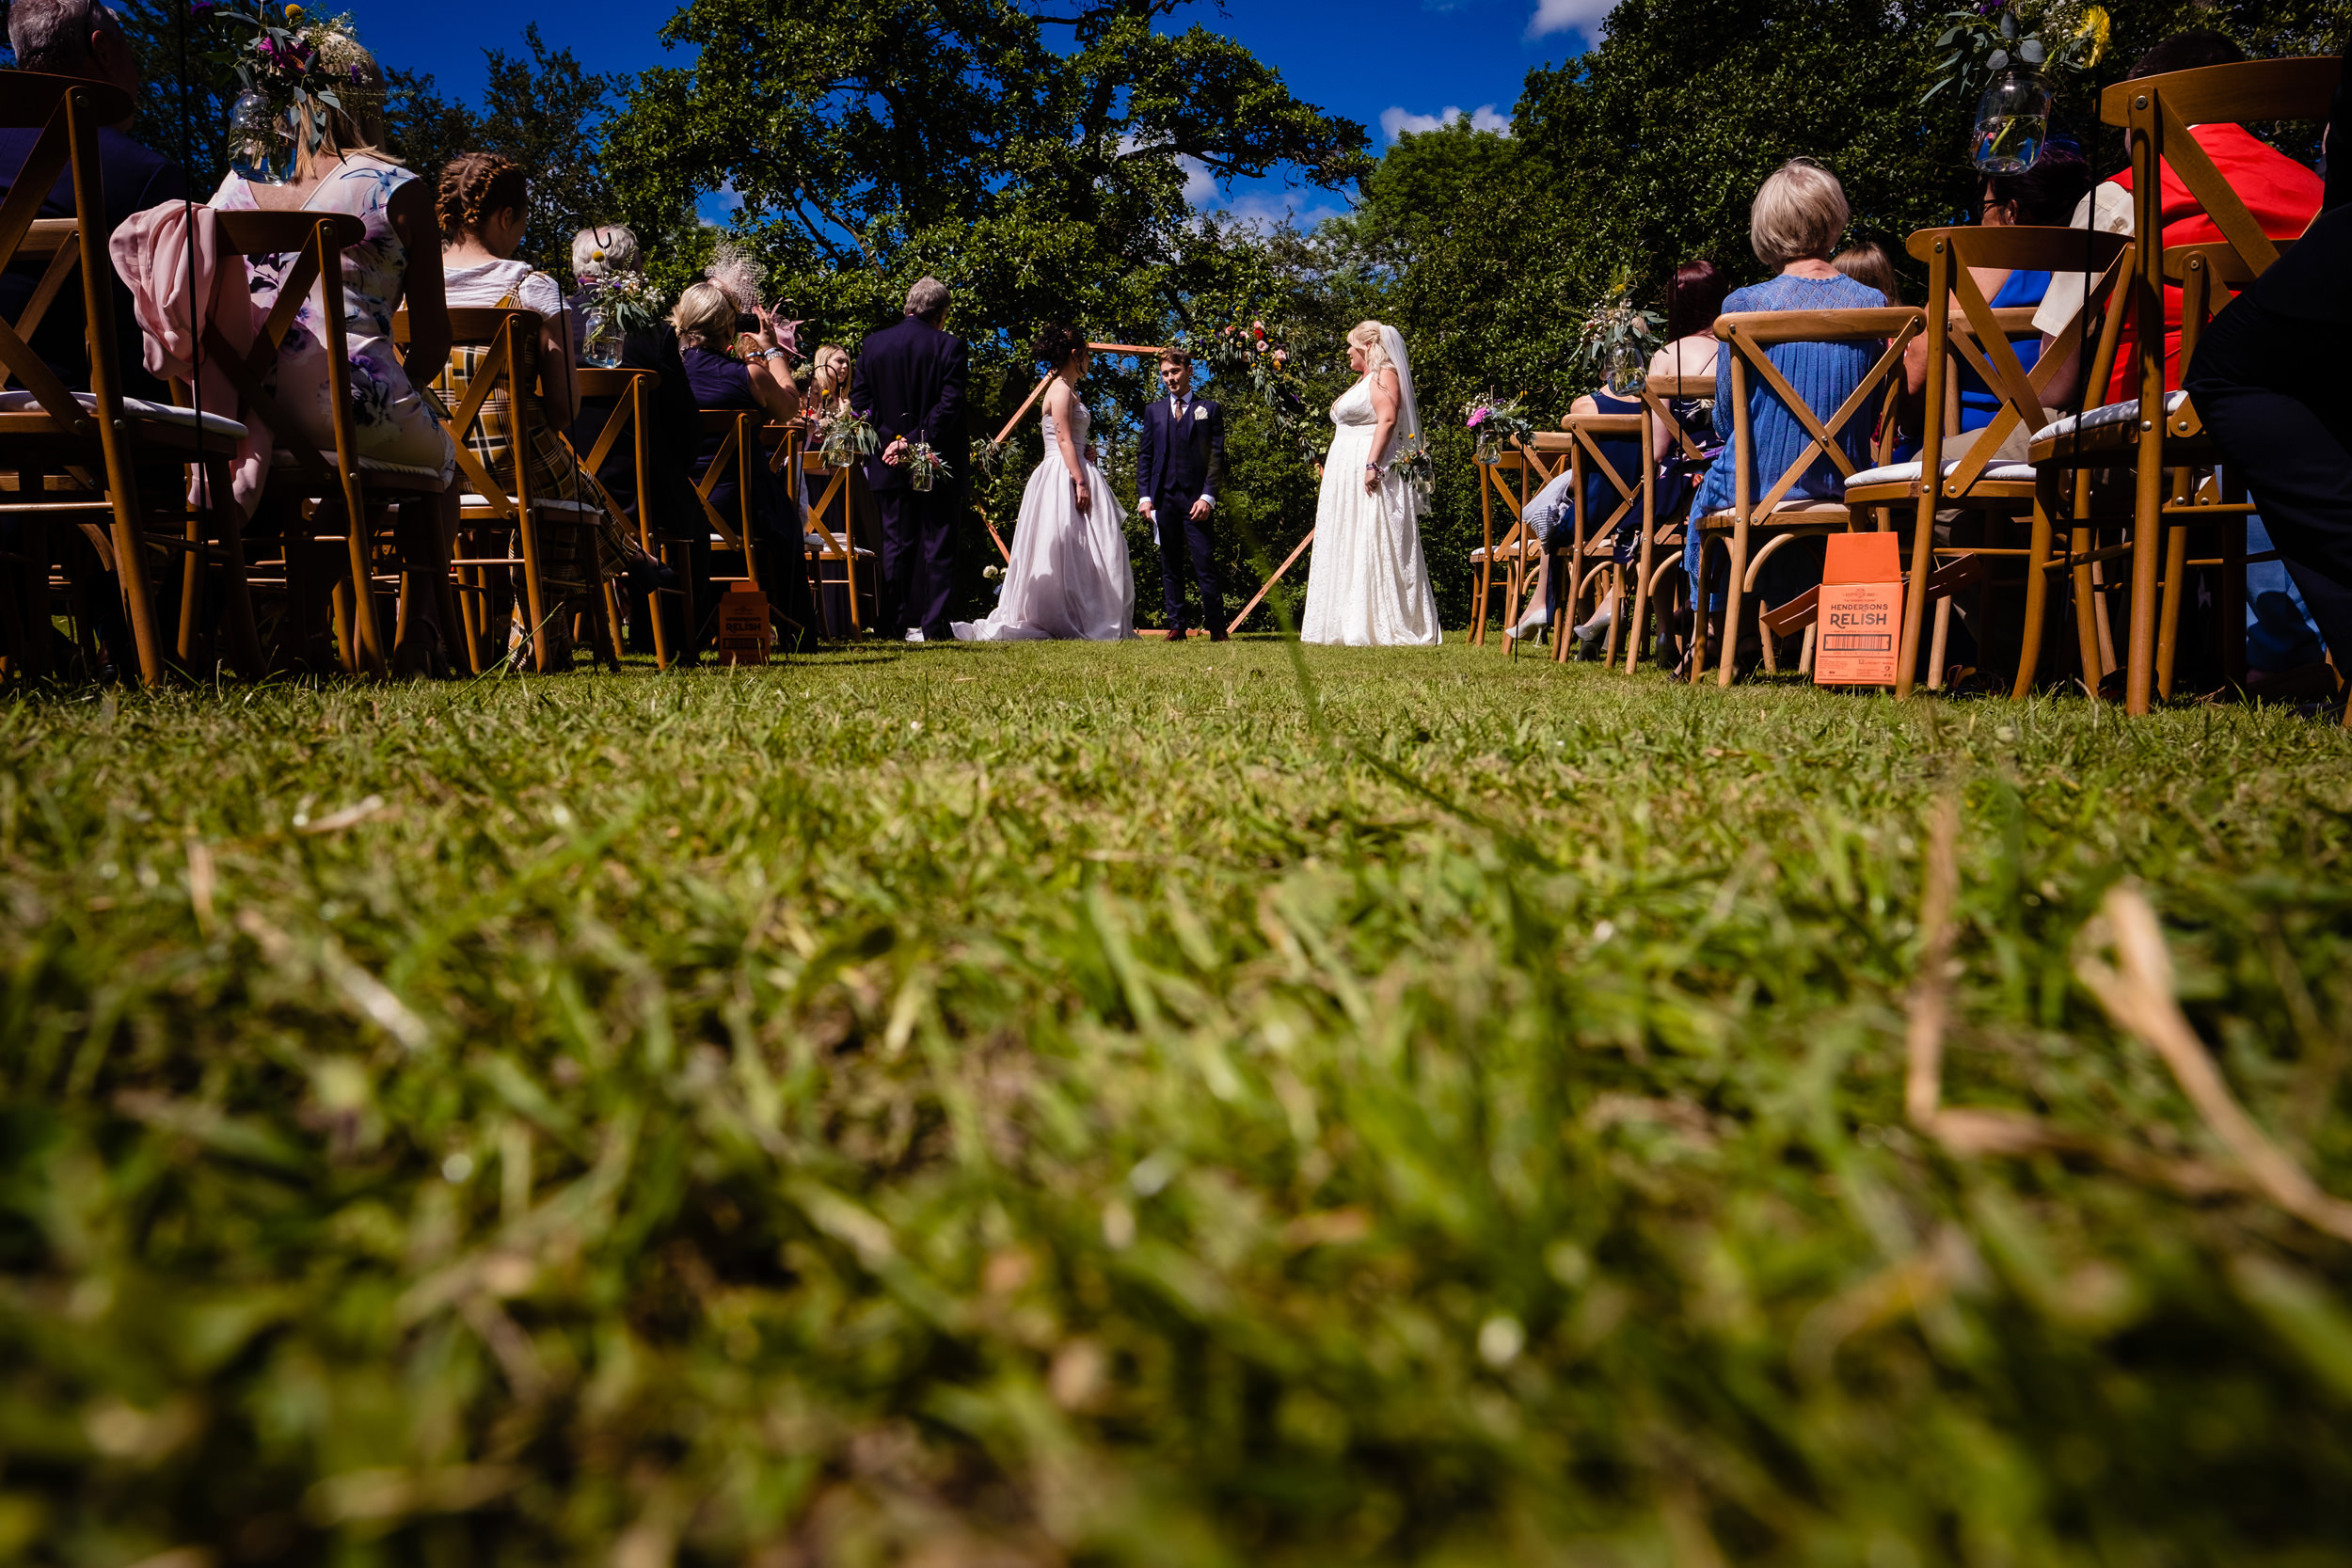 two brides face each other at front of wedding. plough inn, hathersage wedding photography by emma and rich.